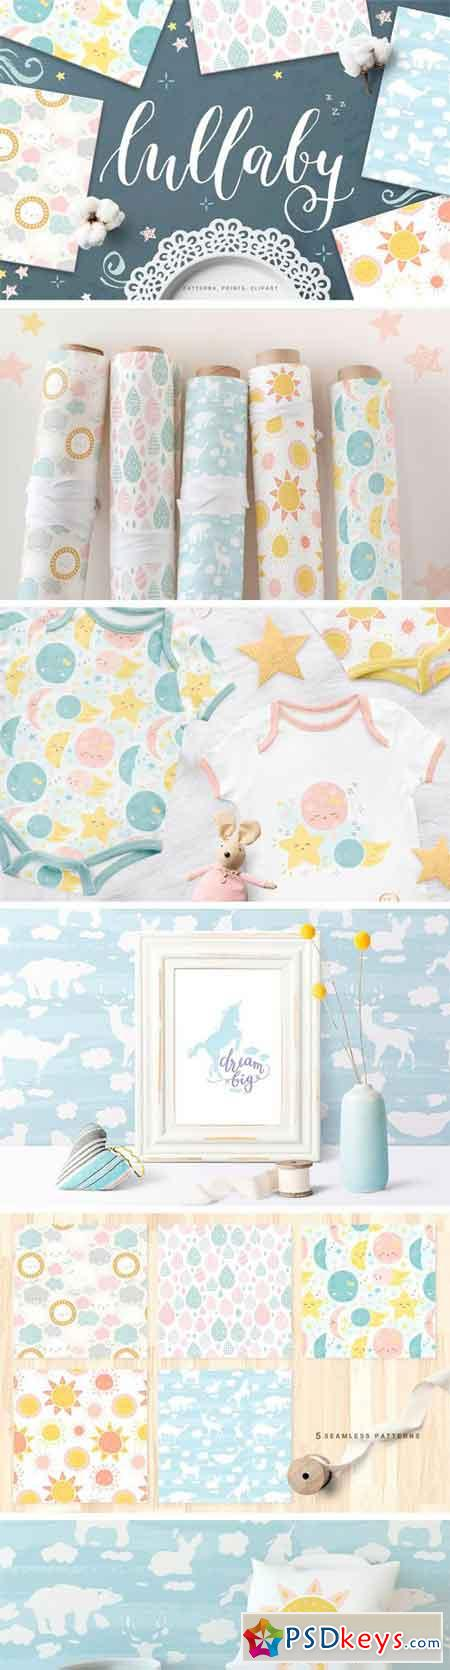 Cute Baby Patterns, Prints, Clipart 2260870